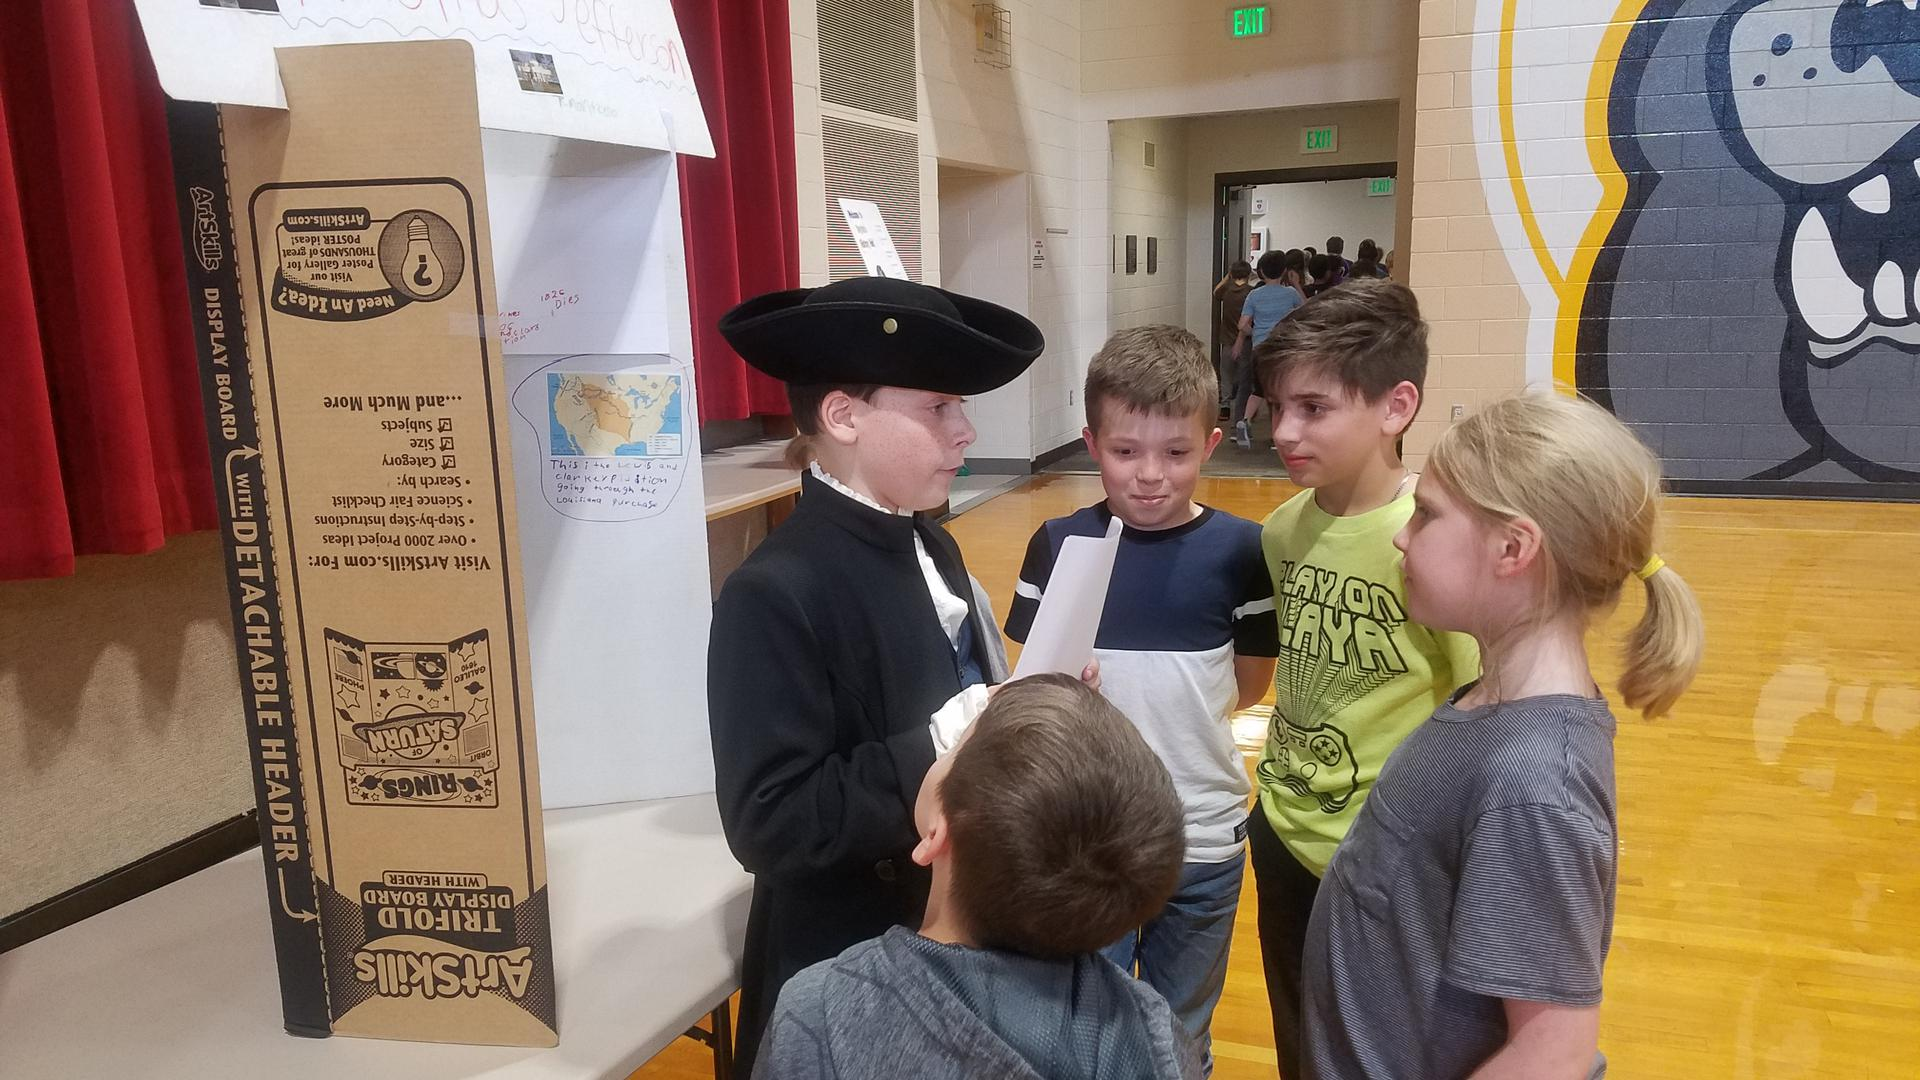 History fair picture